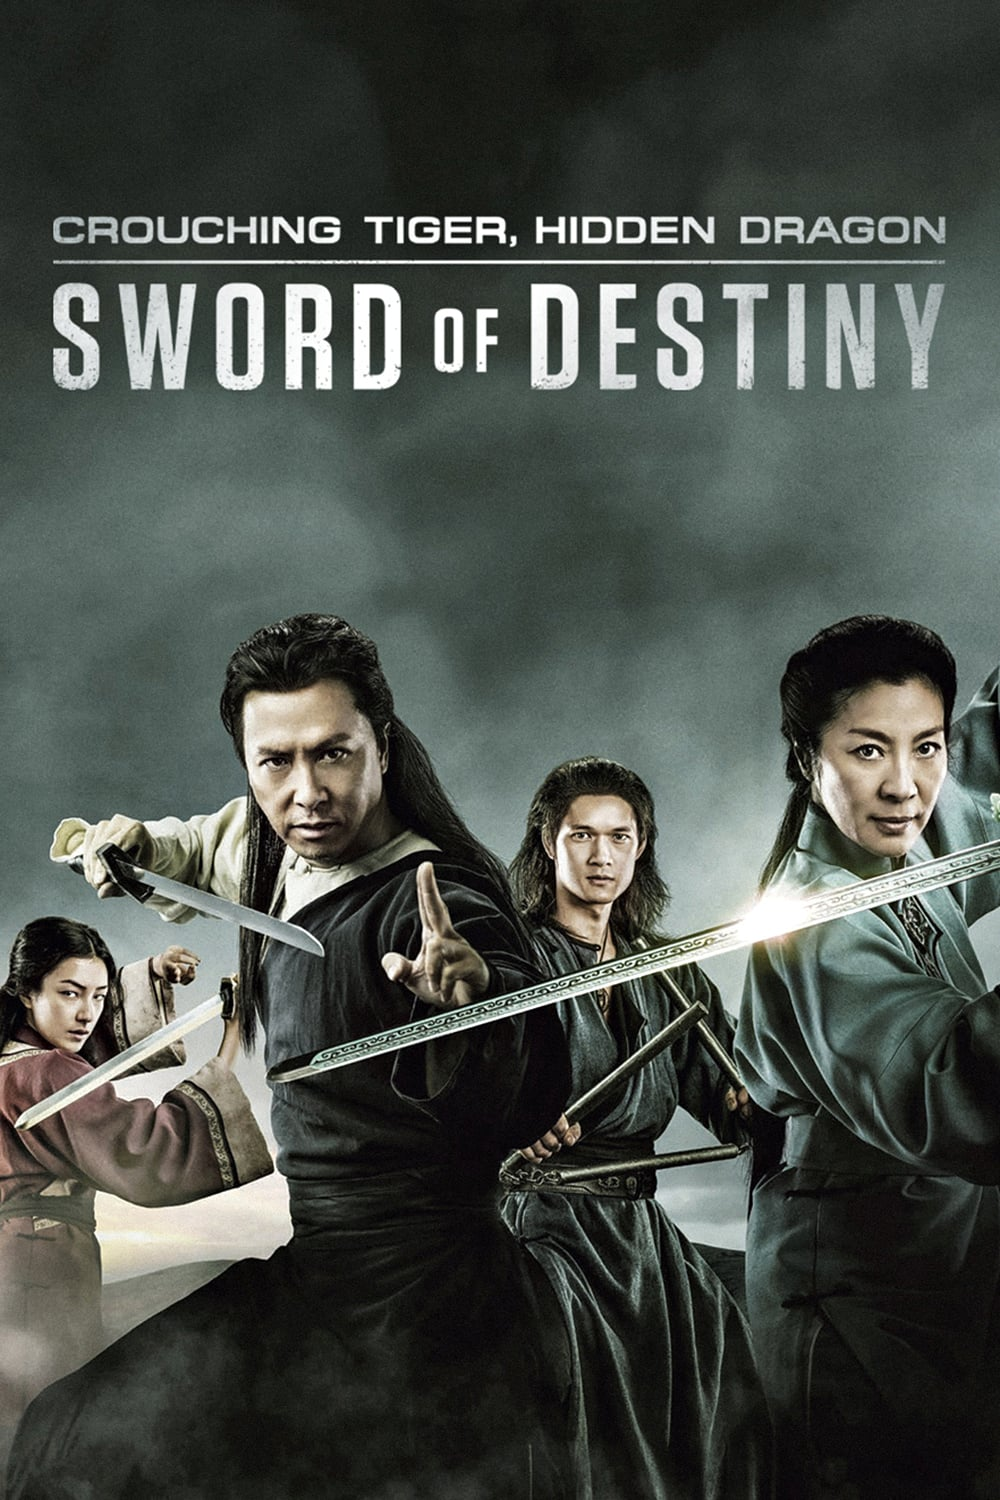 Caratula de CROUCHING TIGER. HIDDEN DRAGON: SWORD OF DESTINY (Tigre y dragon 2: La espada del destino)